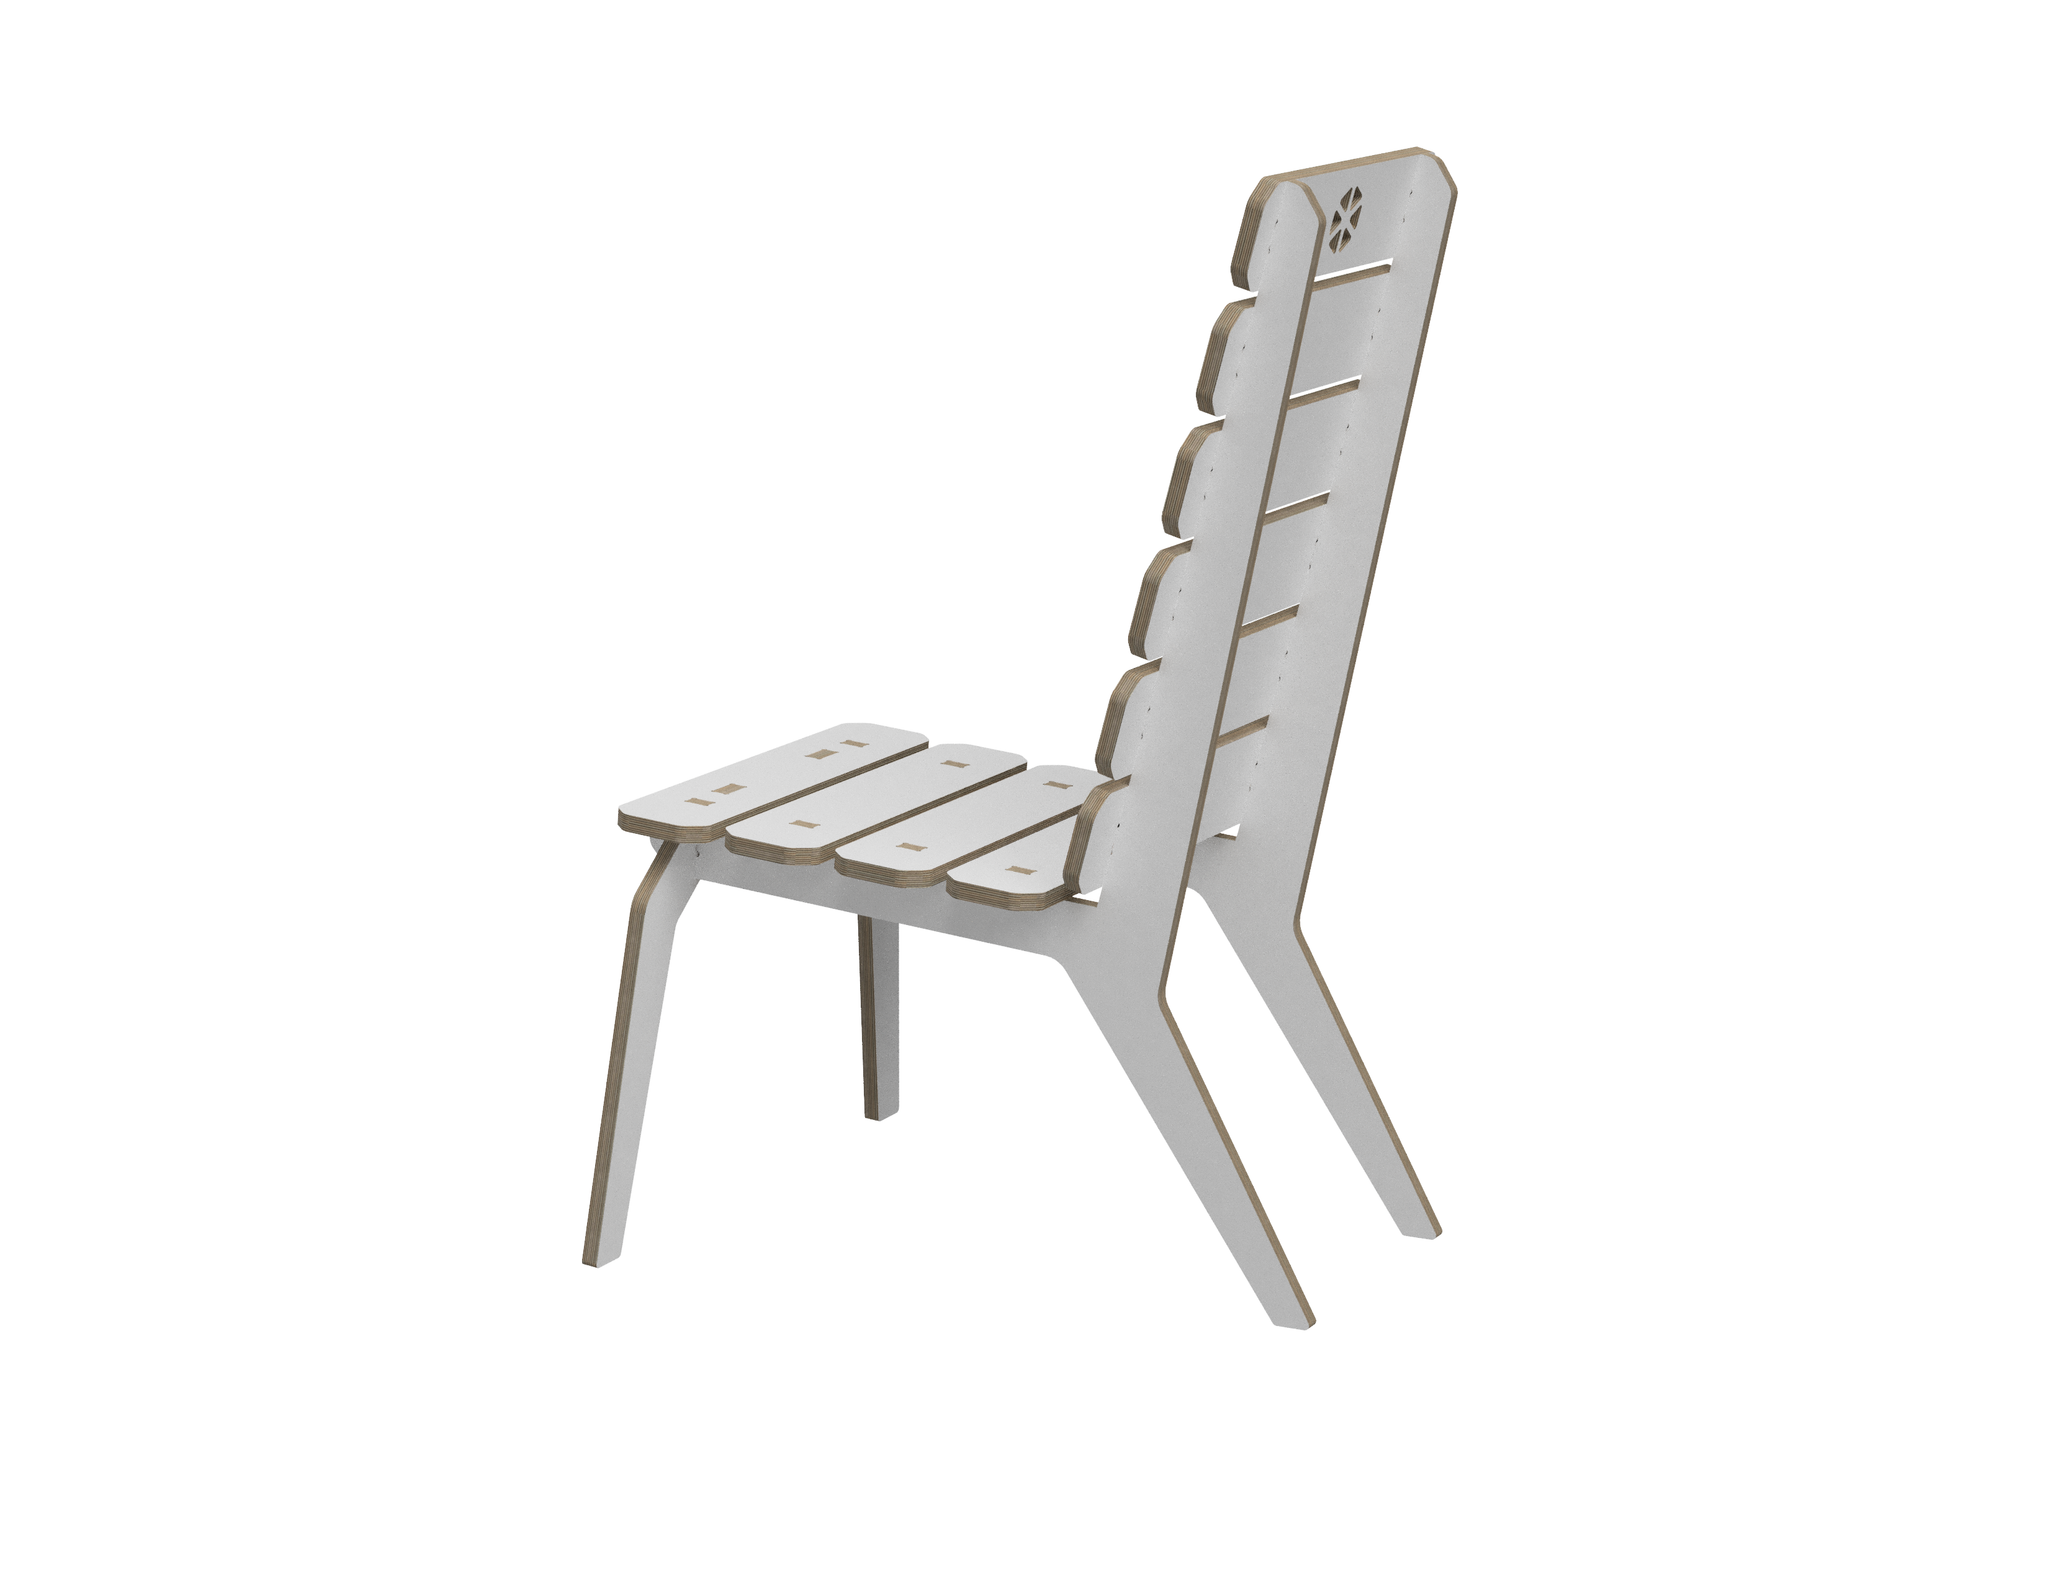 Lounge chair DXF file